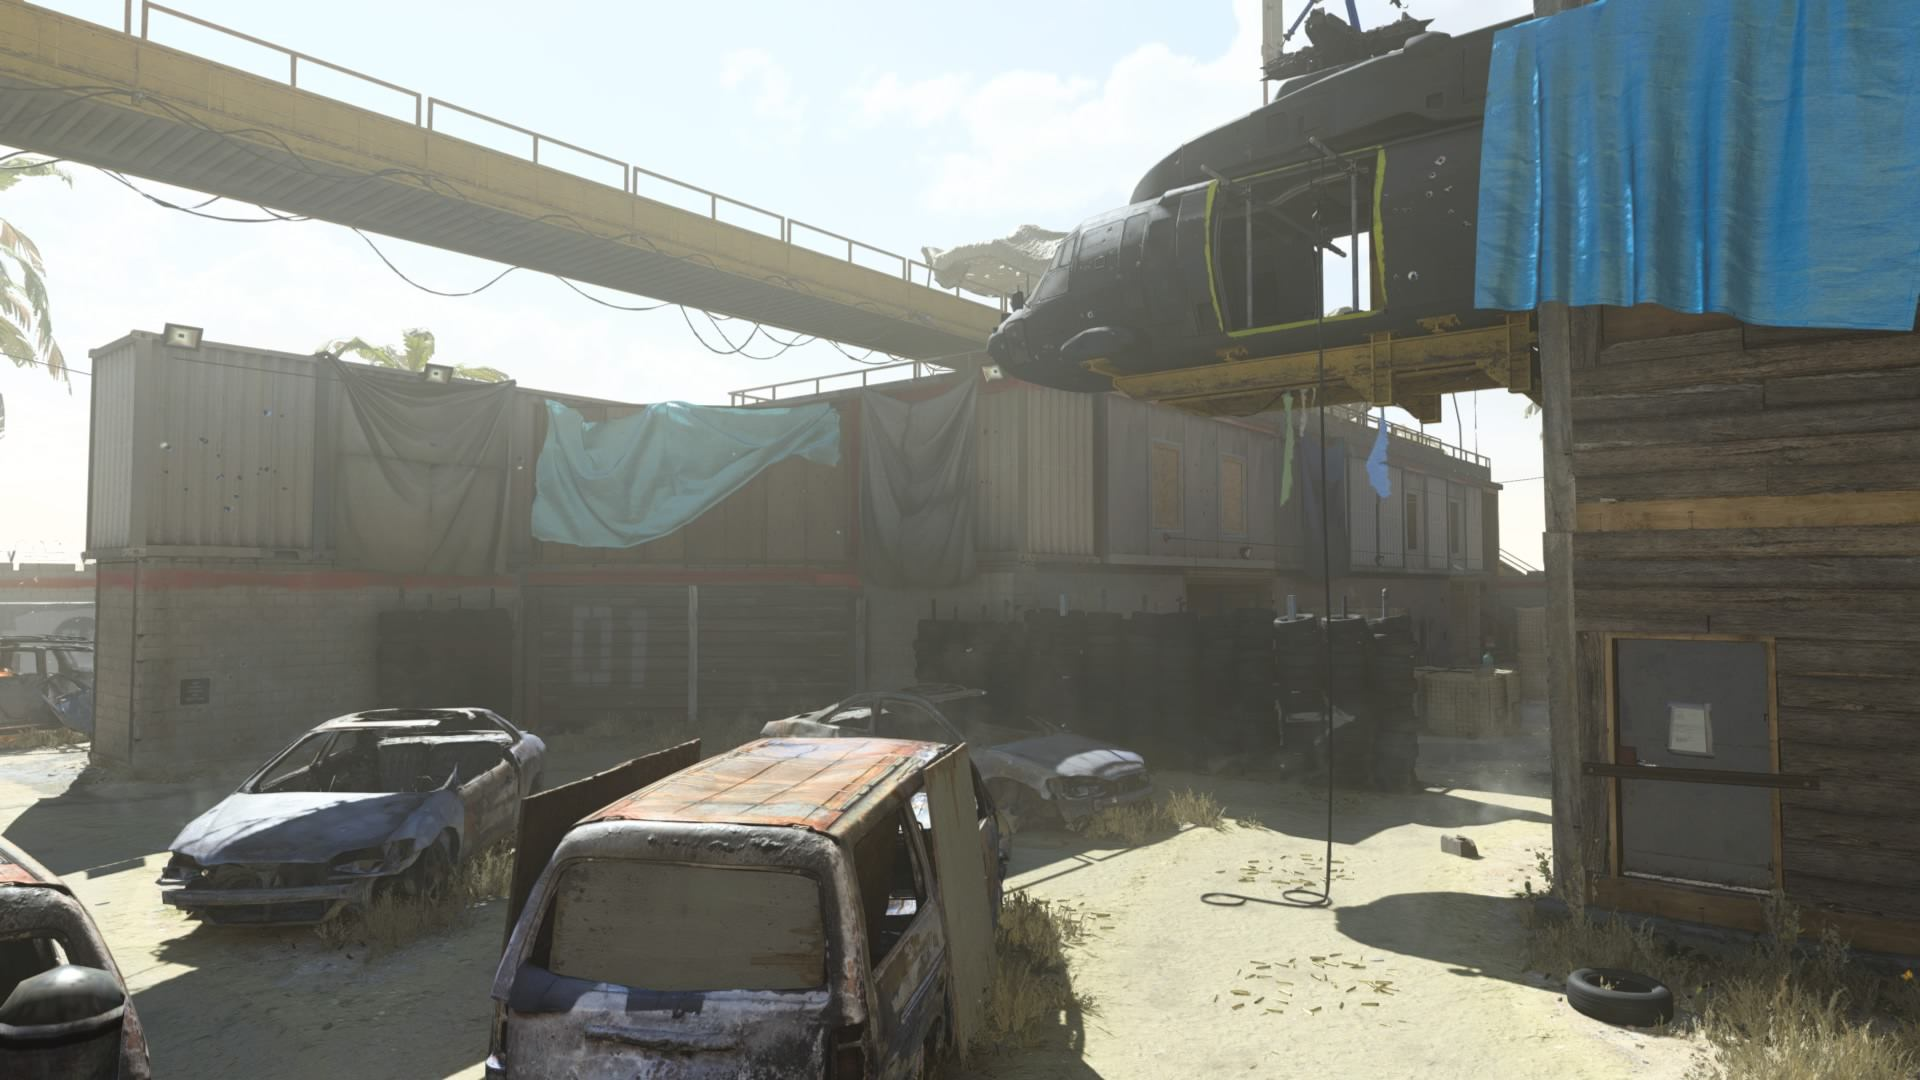 CoD: Modern Warfare's 'Shoot House' Map Set to Arrive in Call of Duty: Mobile